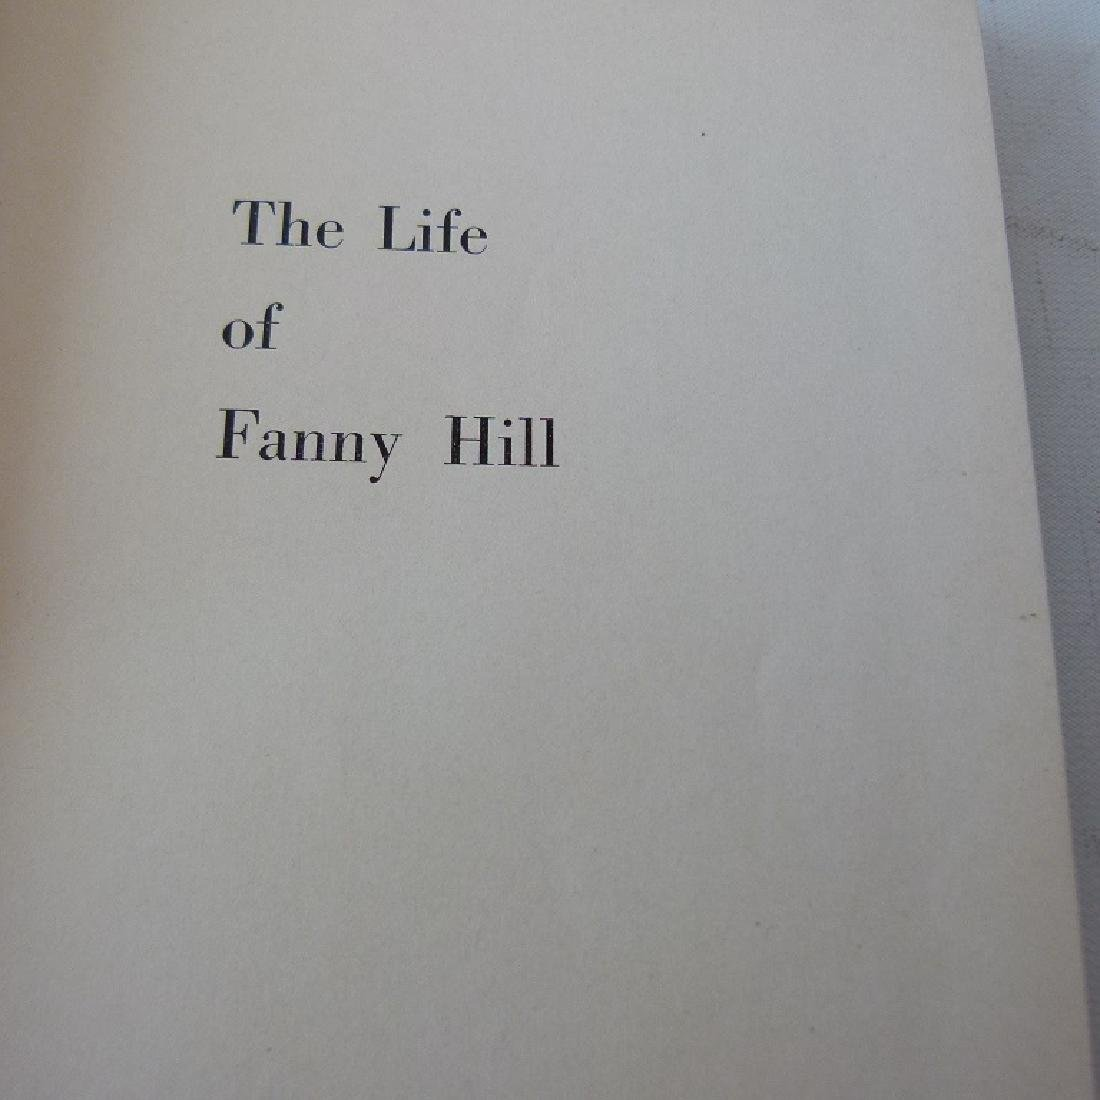 VOL. THE LIFE OF FANNY HILL BY JOHN CLELAND - 2